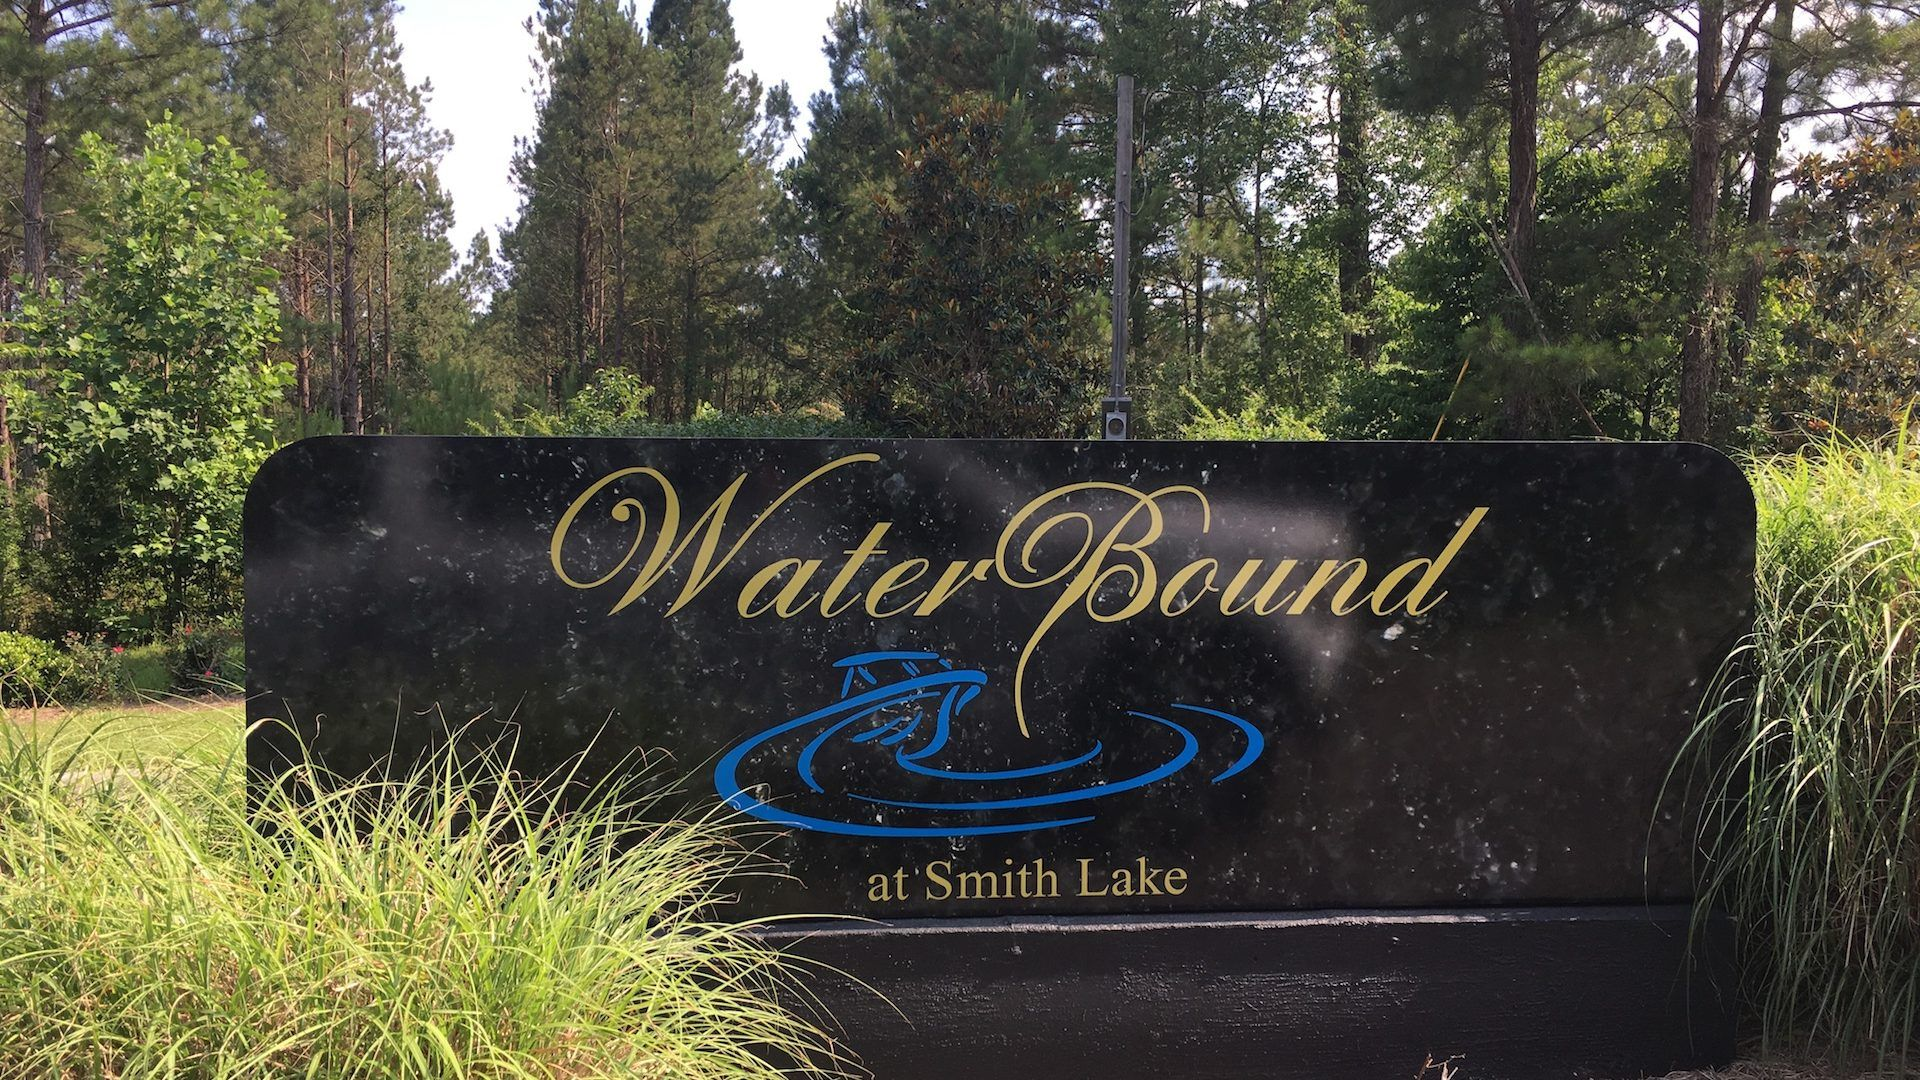 Waterbound at Smith Lake,35053